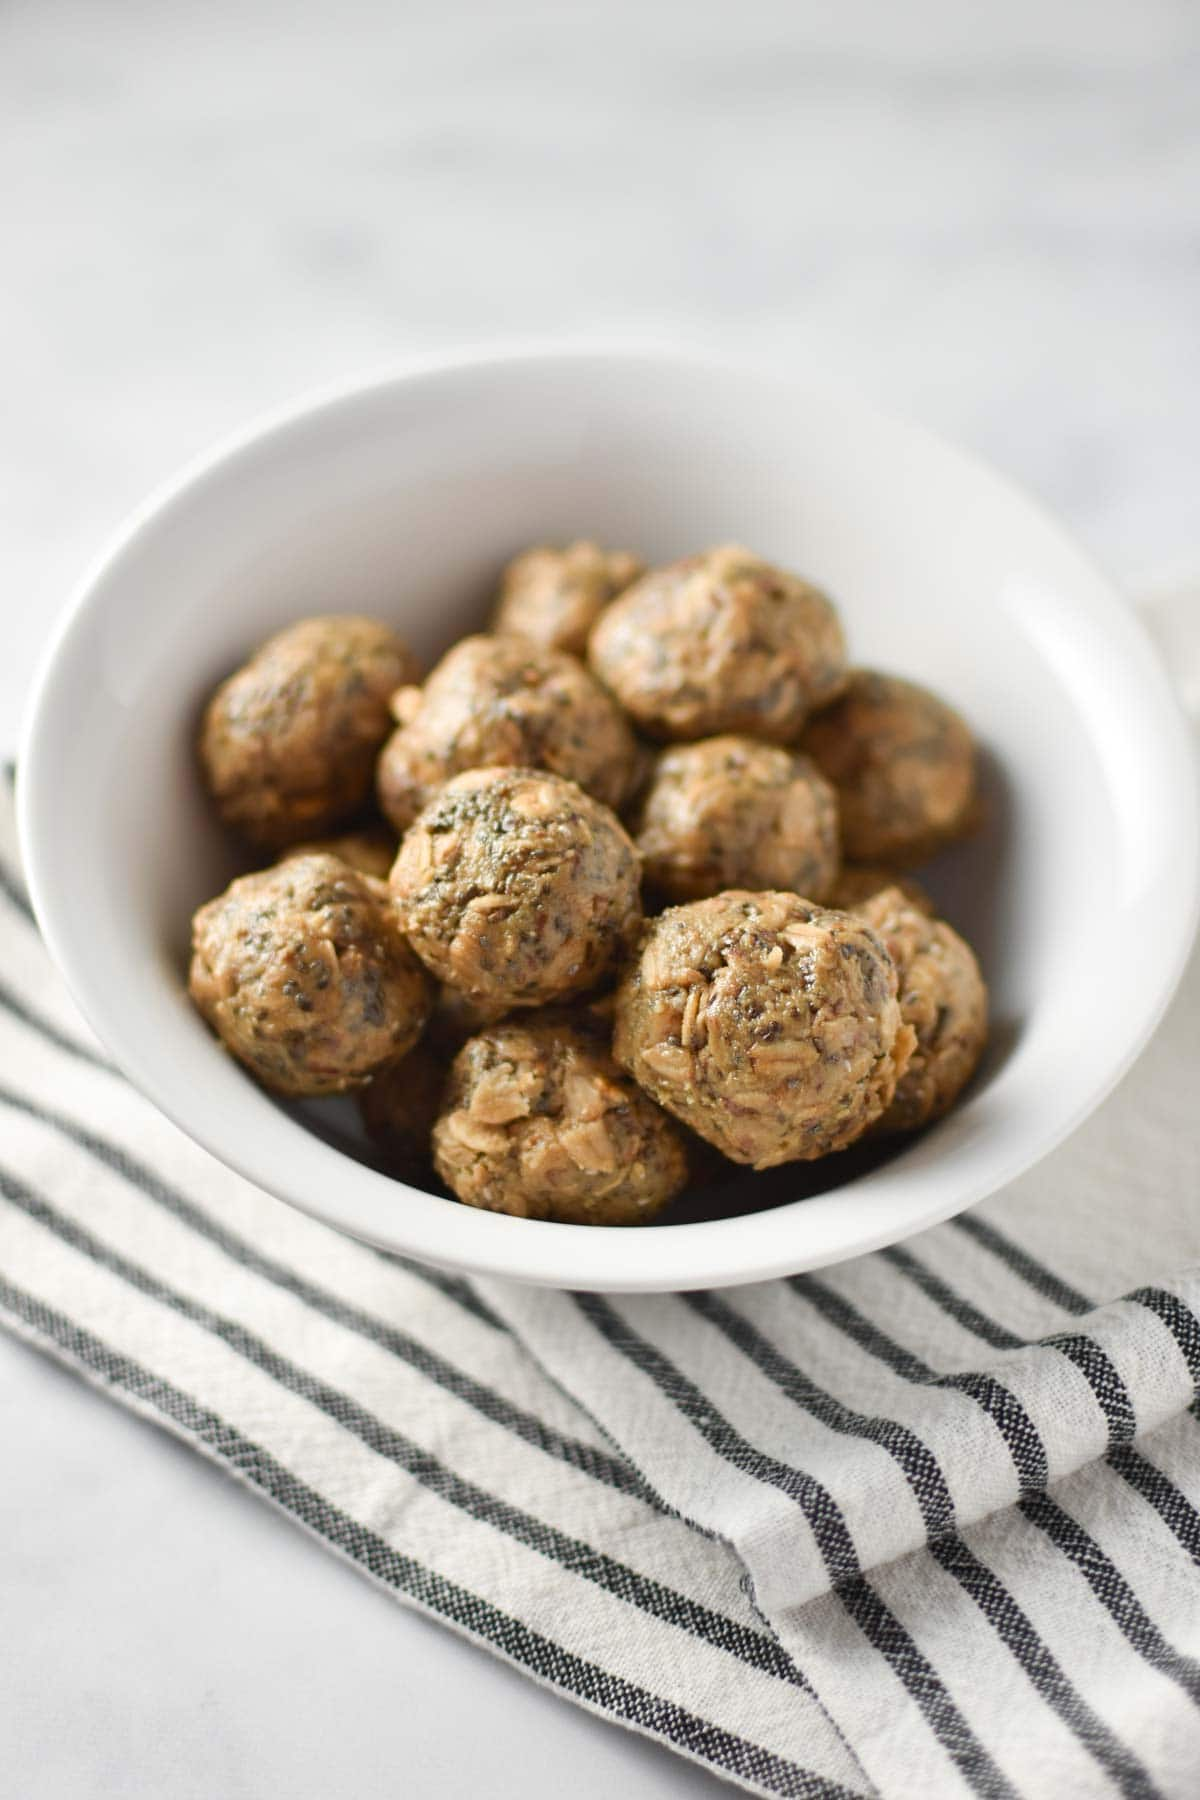 A bowl of sunbutter balls with oats and chia on a striped towel